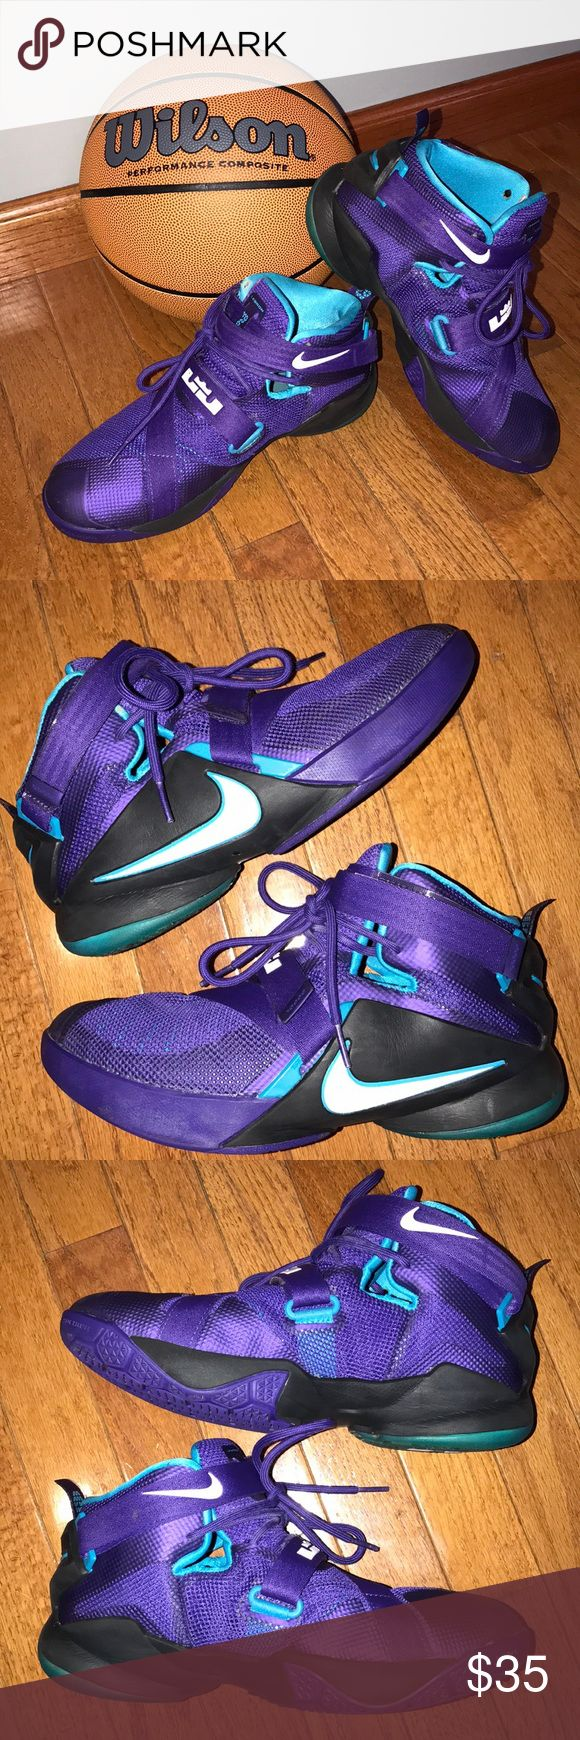 Nike Lebron James Soldier IX Basketball Shoes 7Y Nike High Top Basketball Shoes Lebron James Soldier IX Big boy youth size 7 Some wear, but lots of life left in these.  See pics!  Smoke free home. Nike Shoes Sneakers